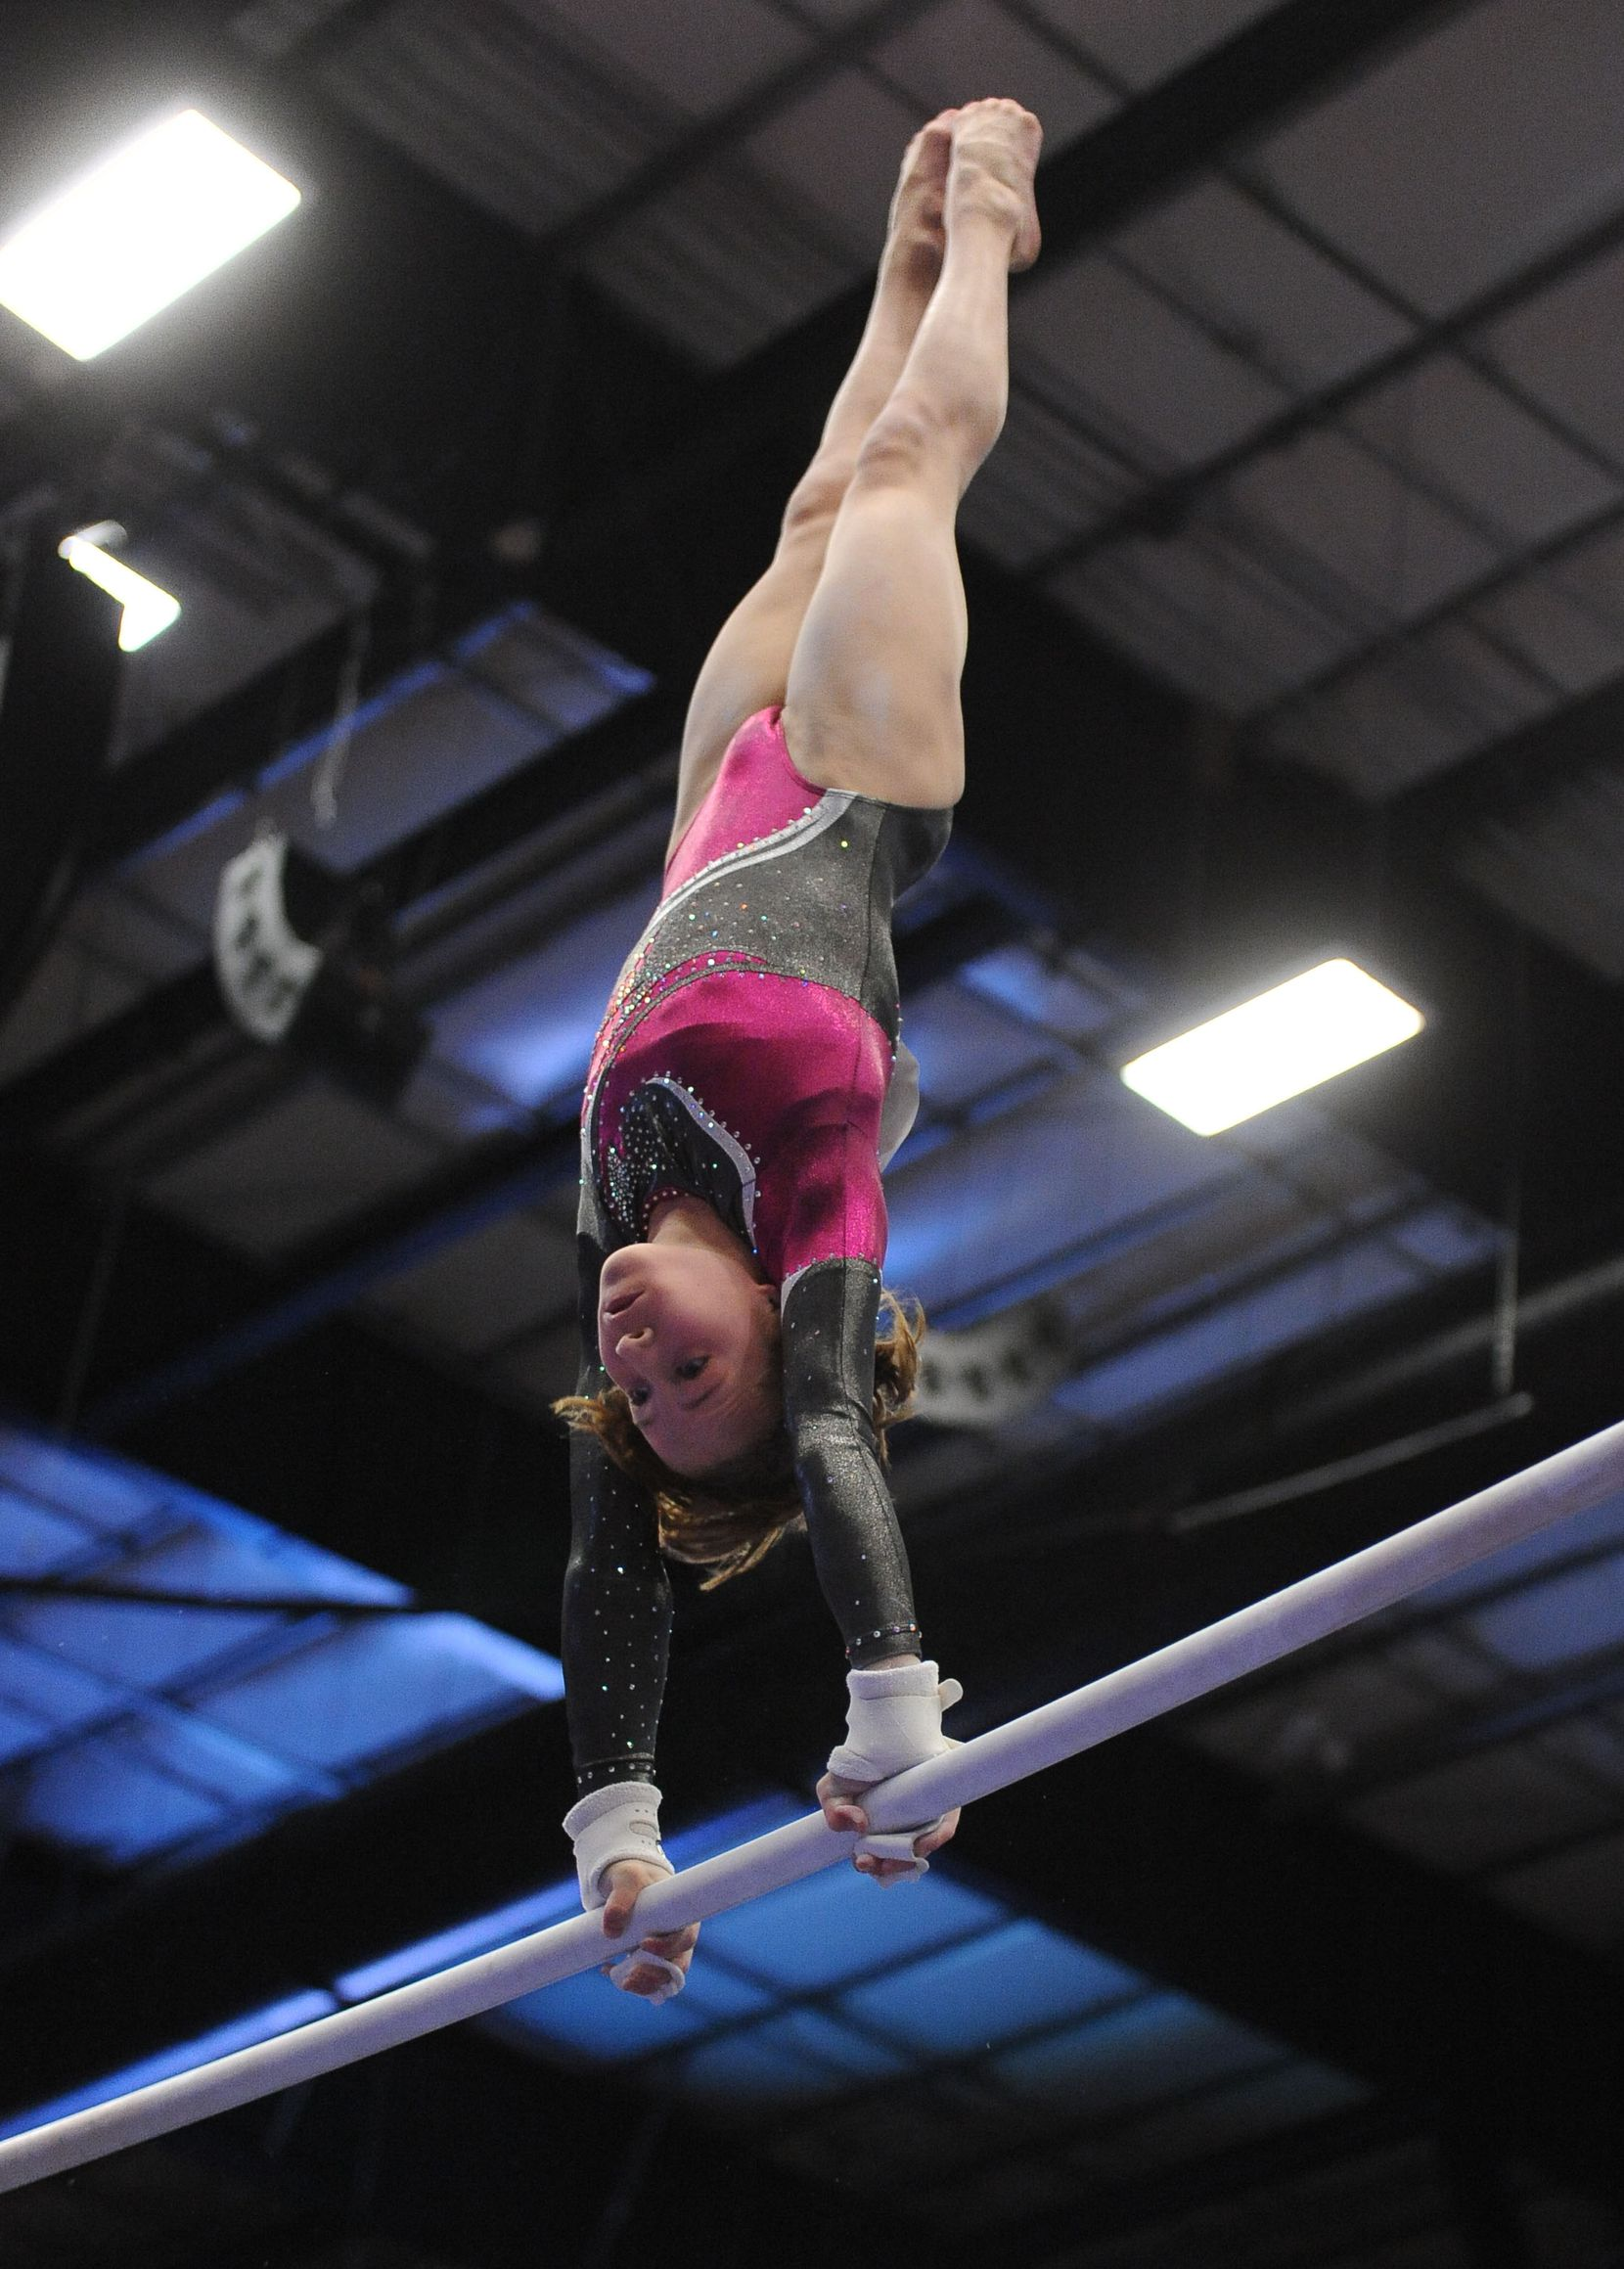 WOGA gymnast Madison Kocian competes on the bars during the competition. Gymnasts from Texas to the Ukraine competed in the WOGA Classic held at the Dr. Pepper arena in Frisco on February 18, 2012.